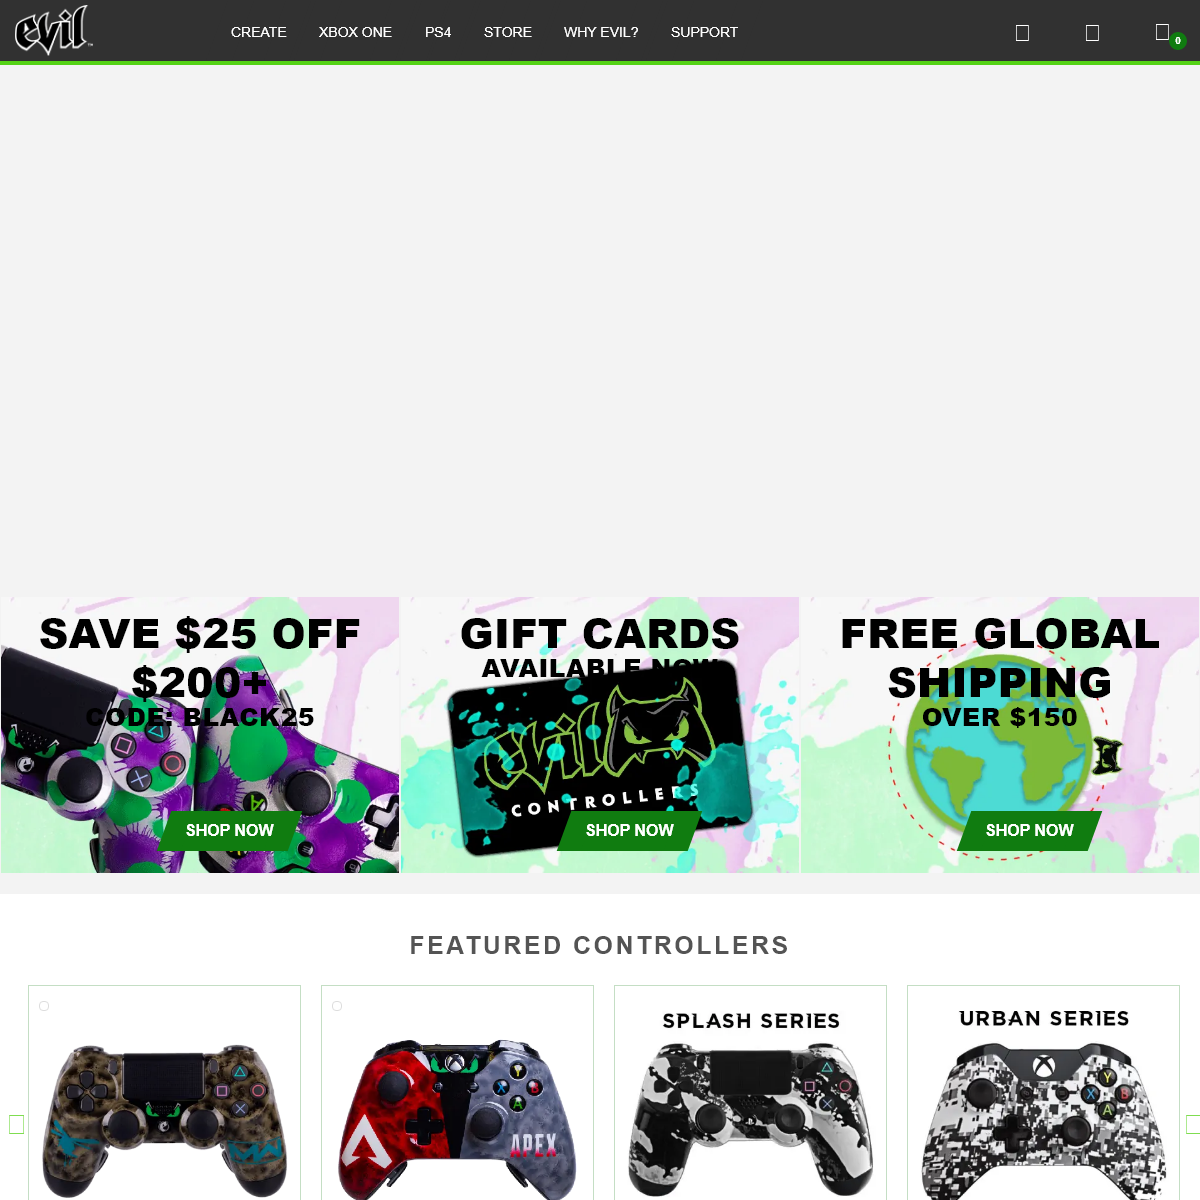 Modded Controller and Custom Controller For Xbox One and PS4 - Evil Controllers